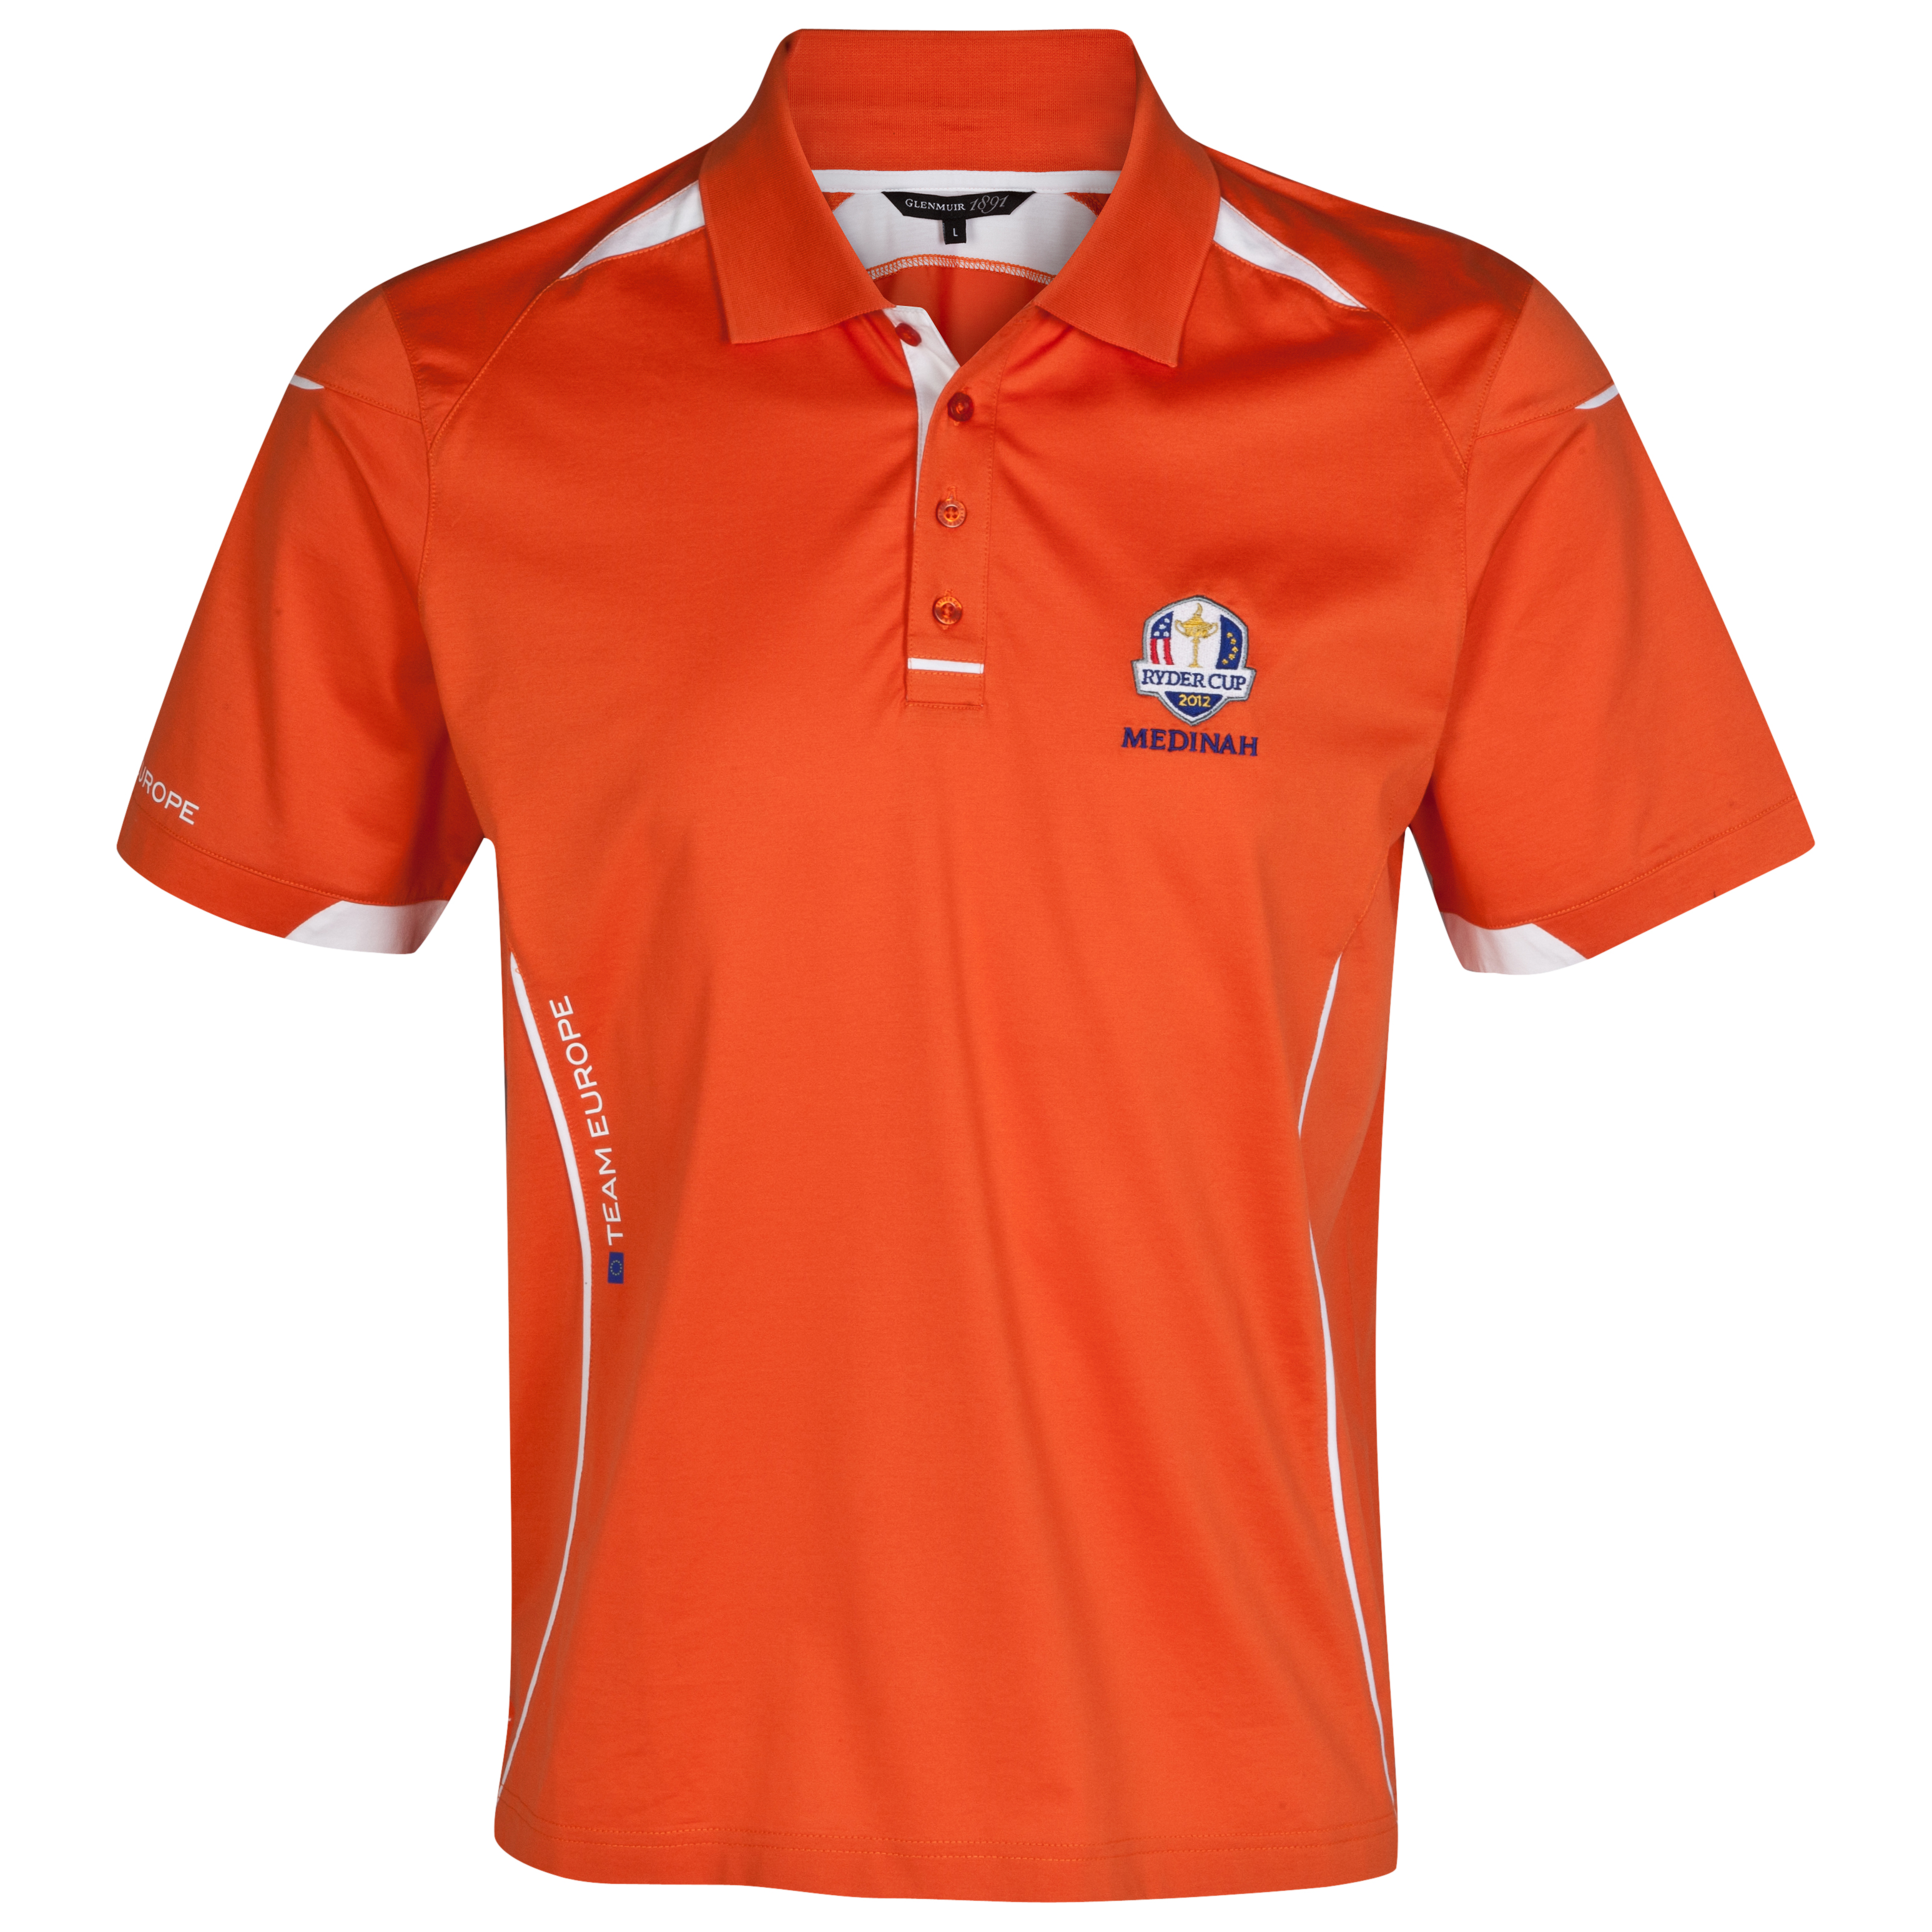 The Ryder Cup The 2012 Medinah European Team Polo Shirt Practice Day 1 (Tuesday) ? Designed by GlenmuirThe Preferred Supplier to the